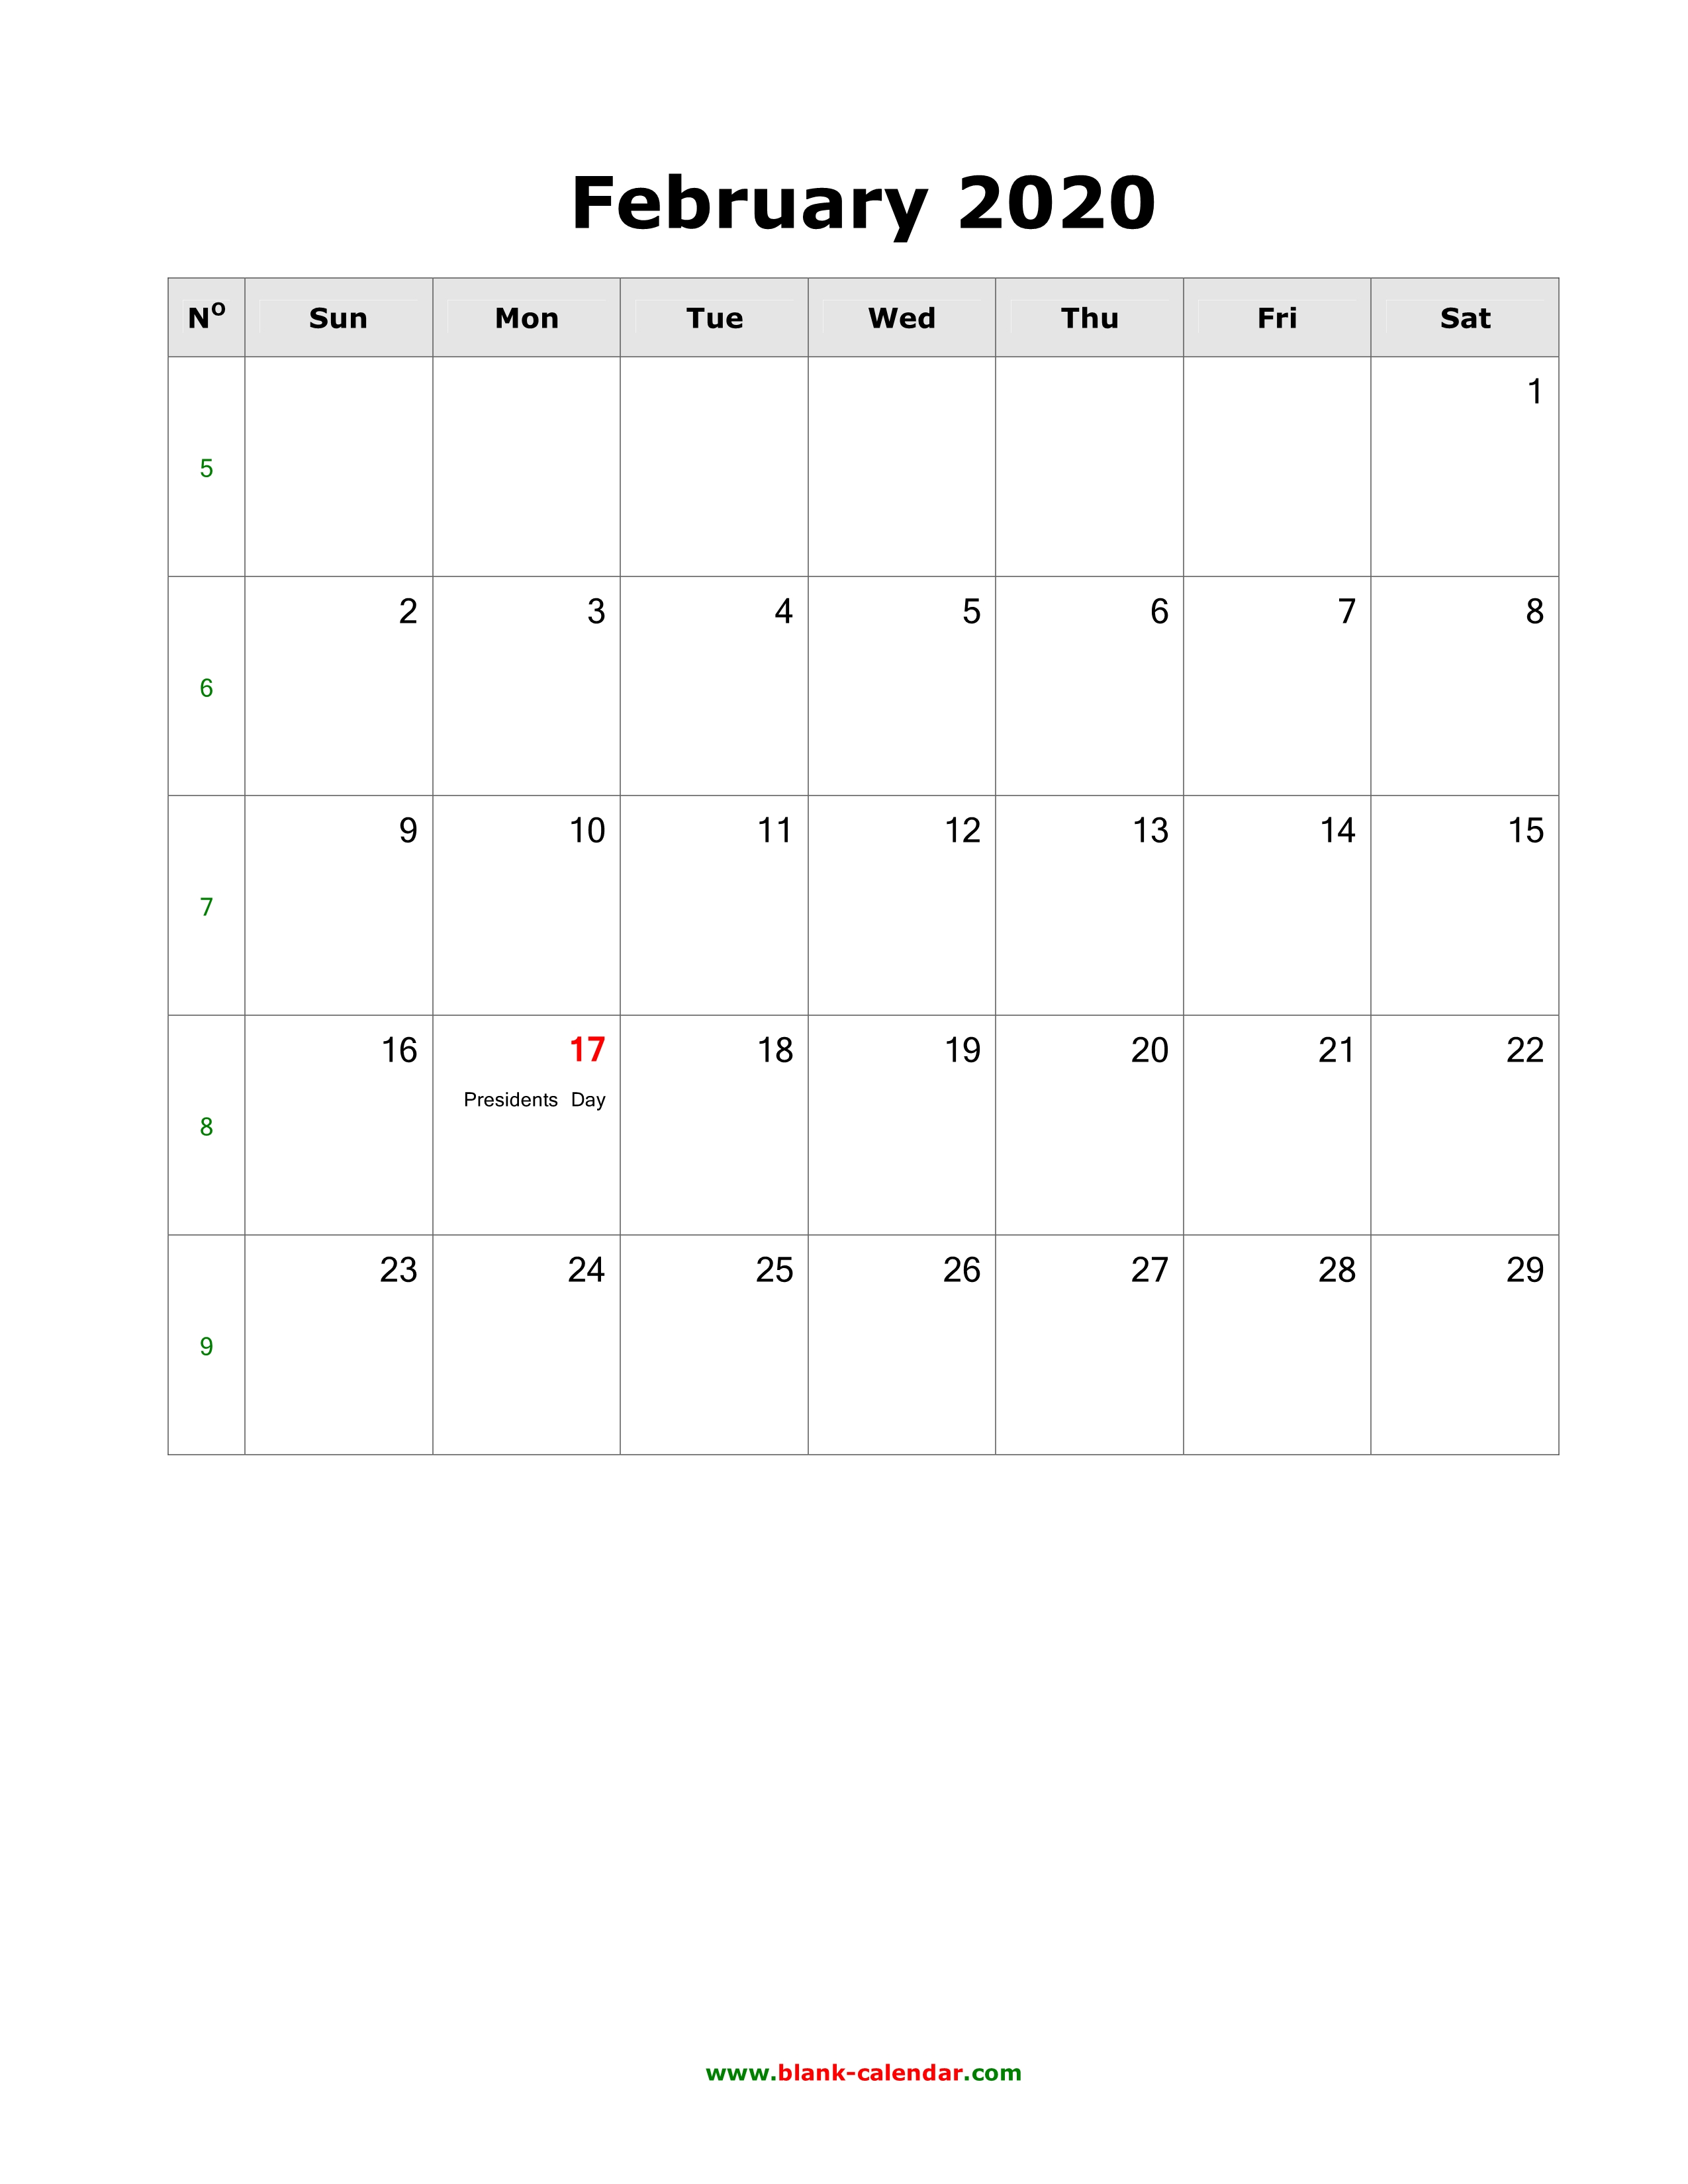 February 2020 Calendar With Holidays Download February 2020 Blank Calendar with US Holidays (vertical)